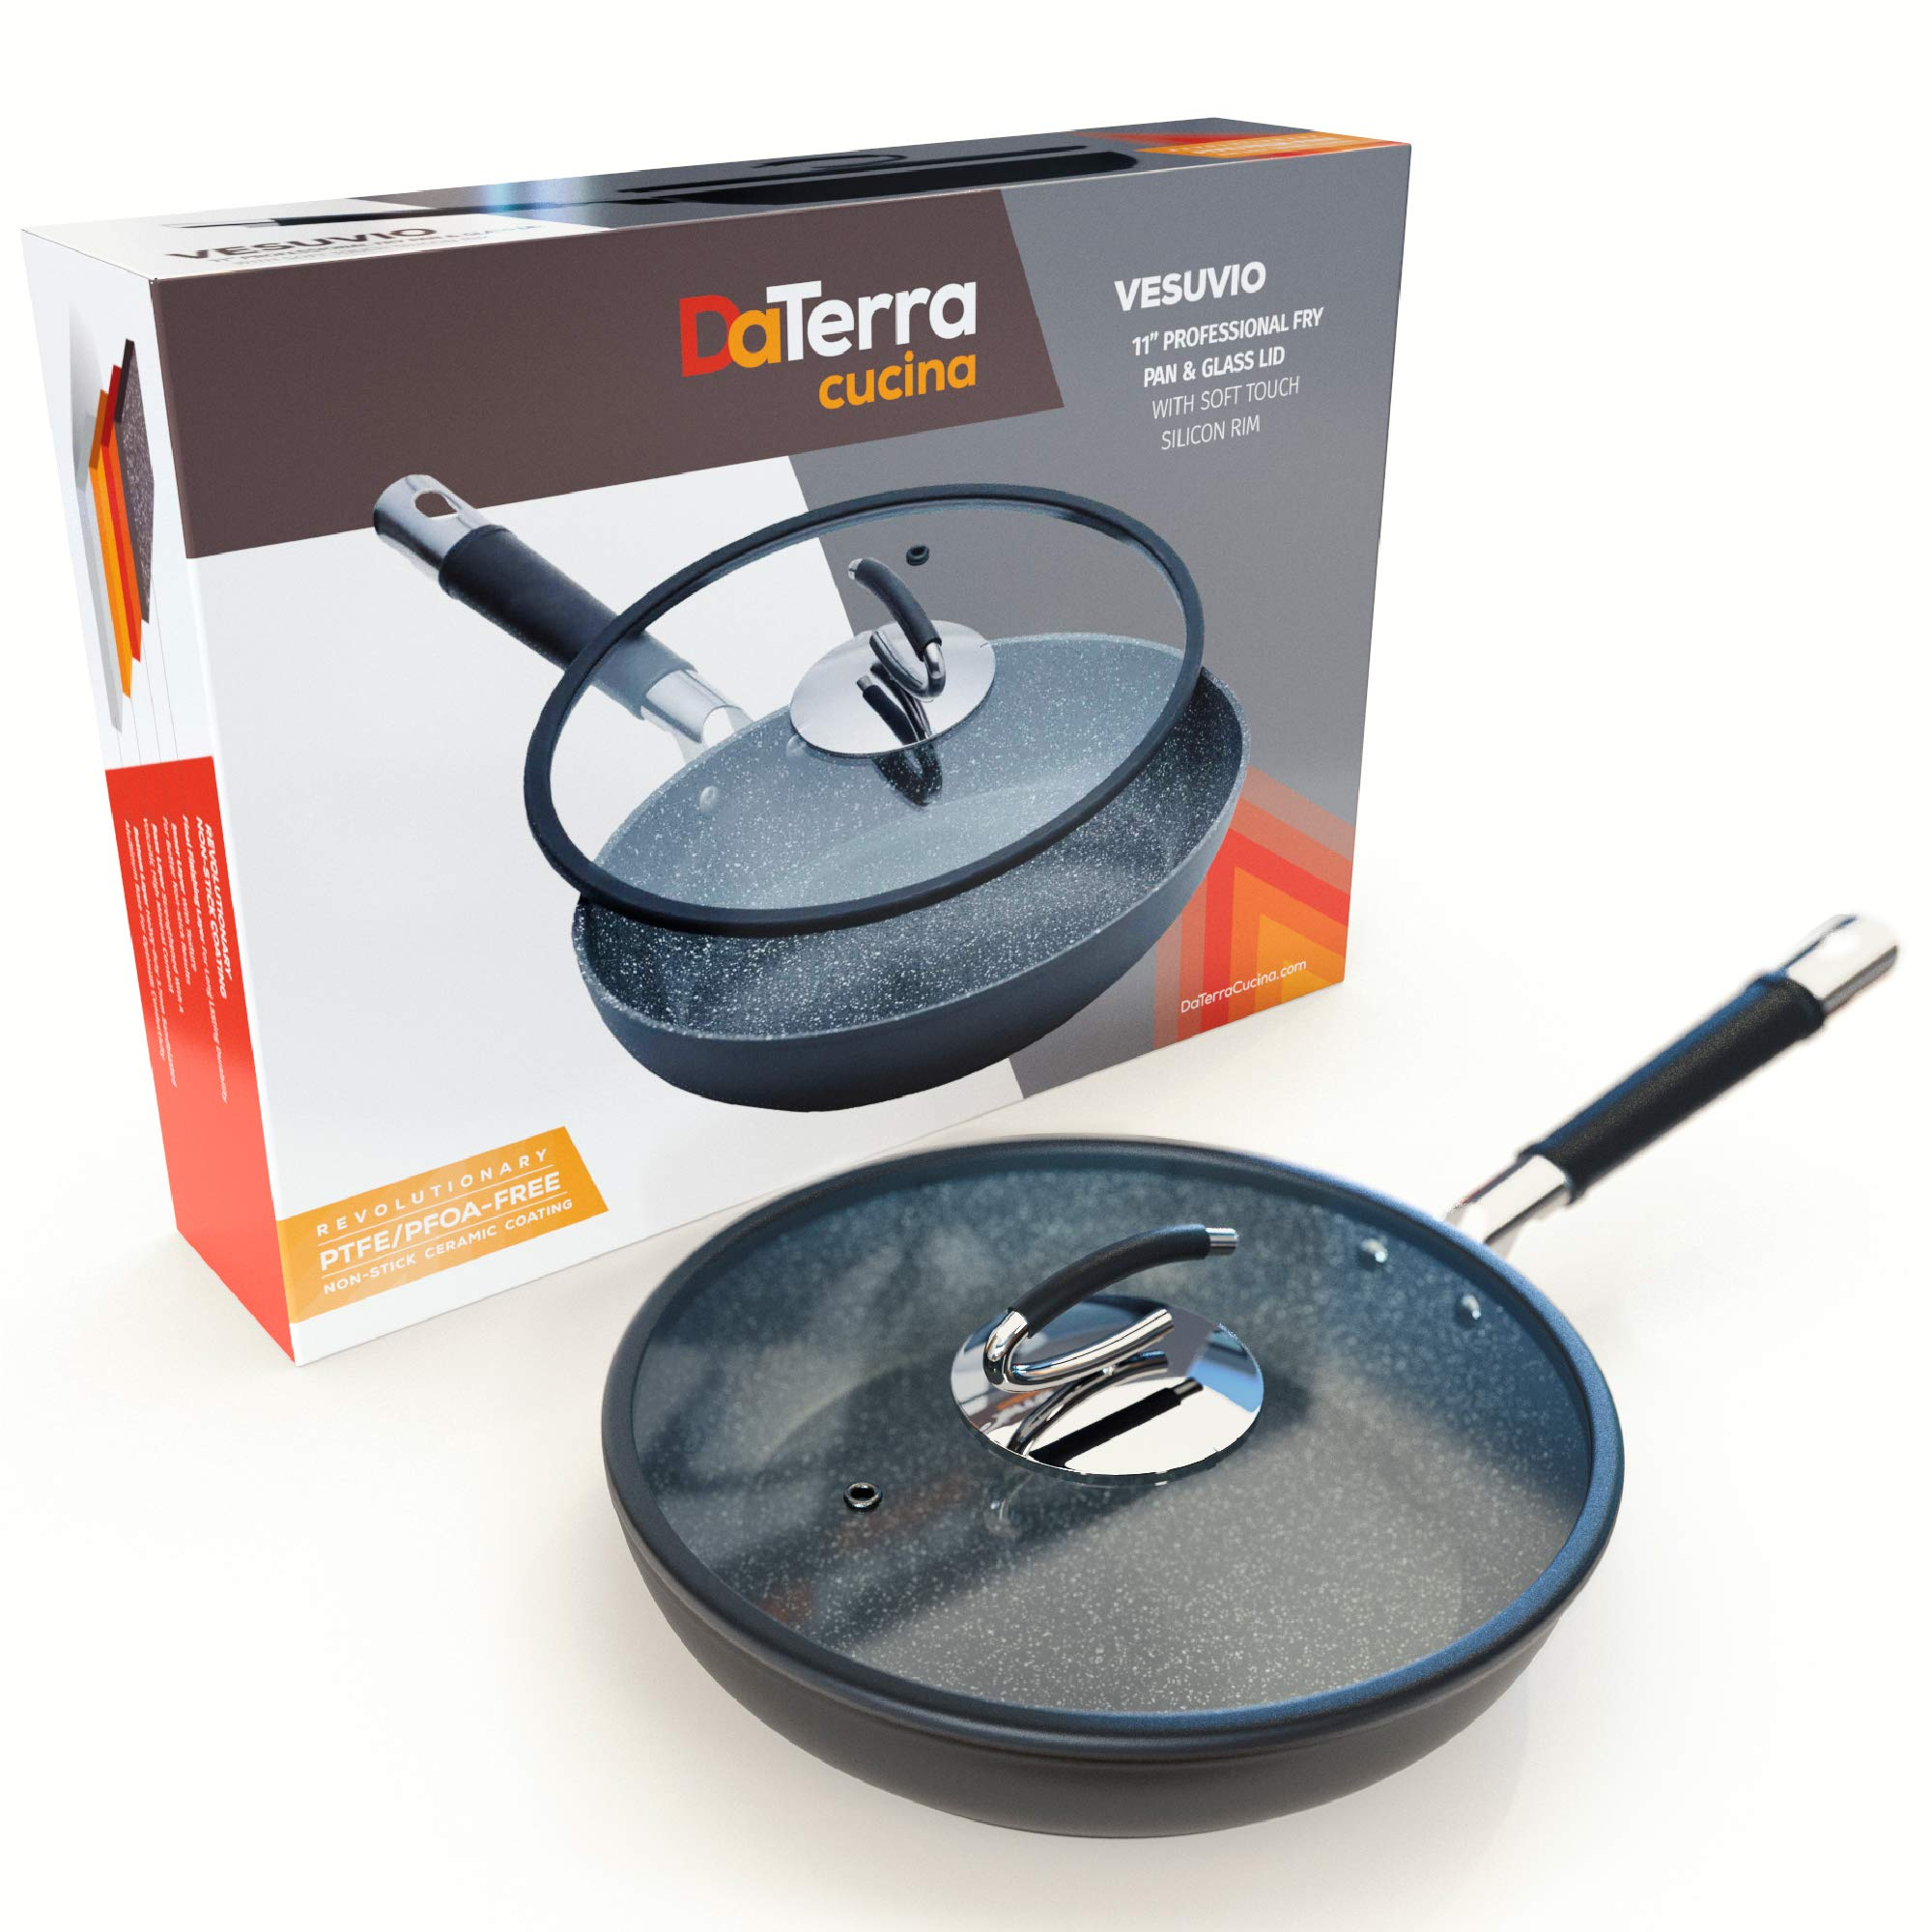 [UPGRADED] Ceramic Pan with Natural Nonstick Coating | Cook Effortlessly on Glasstop, Electric & Propane Stoves with No PTFE, Cadmium, Lead or PFOA Chemicals | Lid Included- By DaTerra Cucina by DaTerra Cucina